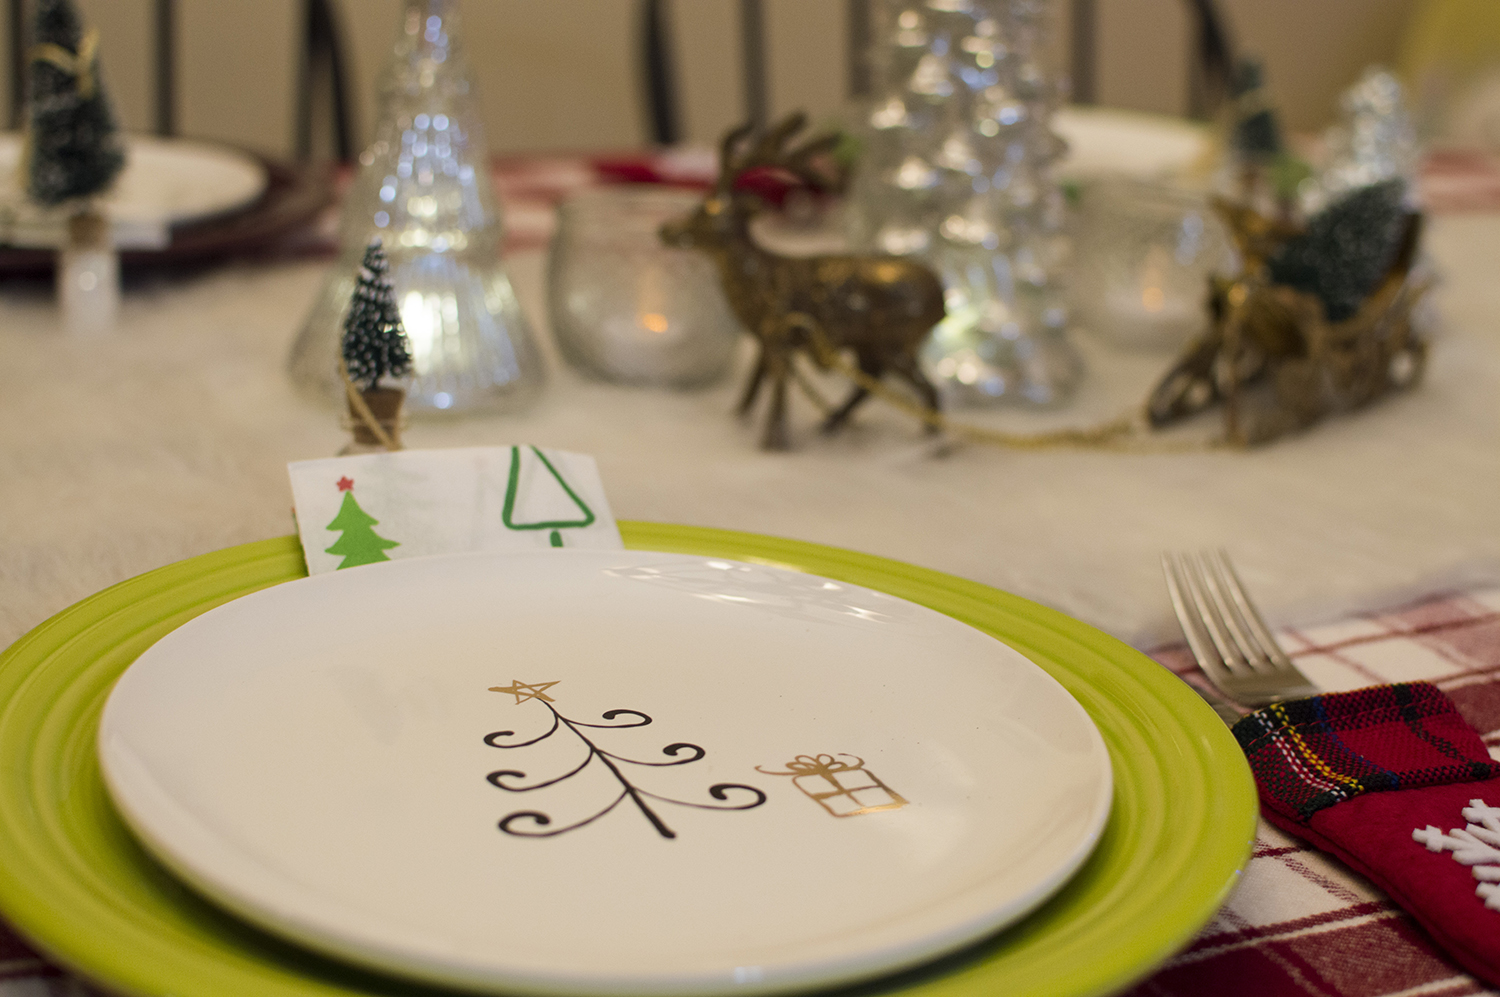 Holiday giveaway week win a 50 macys gift card from macys south festive salad or dessert plates make a fantastic hostess gift and the low price on this merry bright set is unbeatable shopping for yourself solutioingenieria Gallery